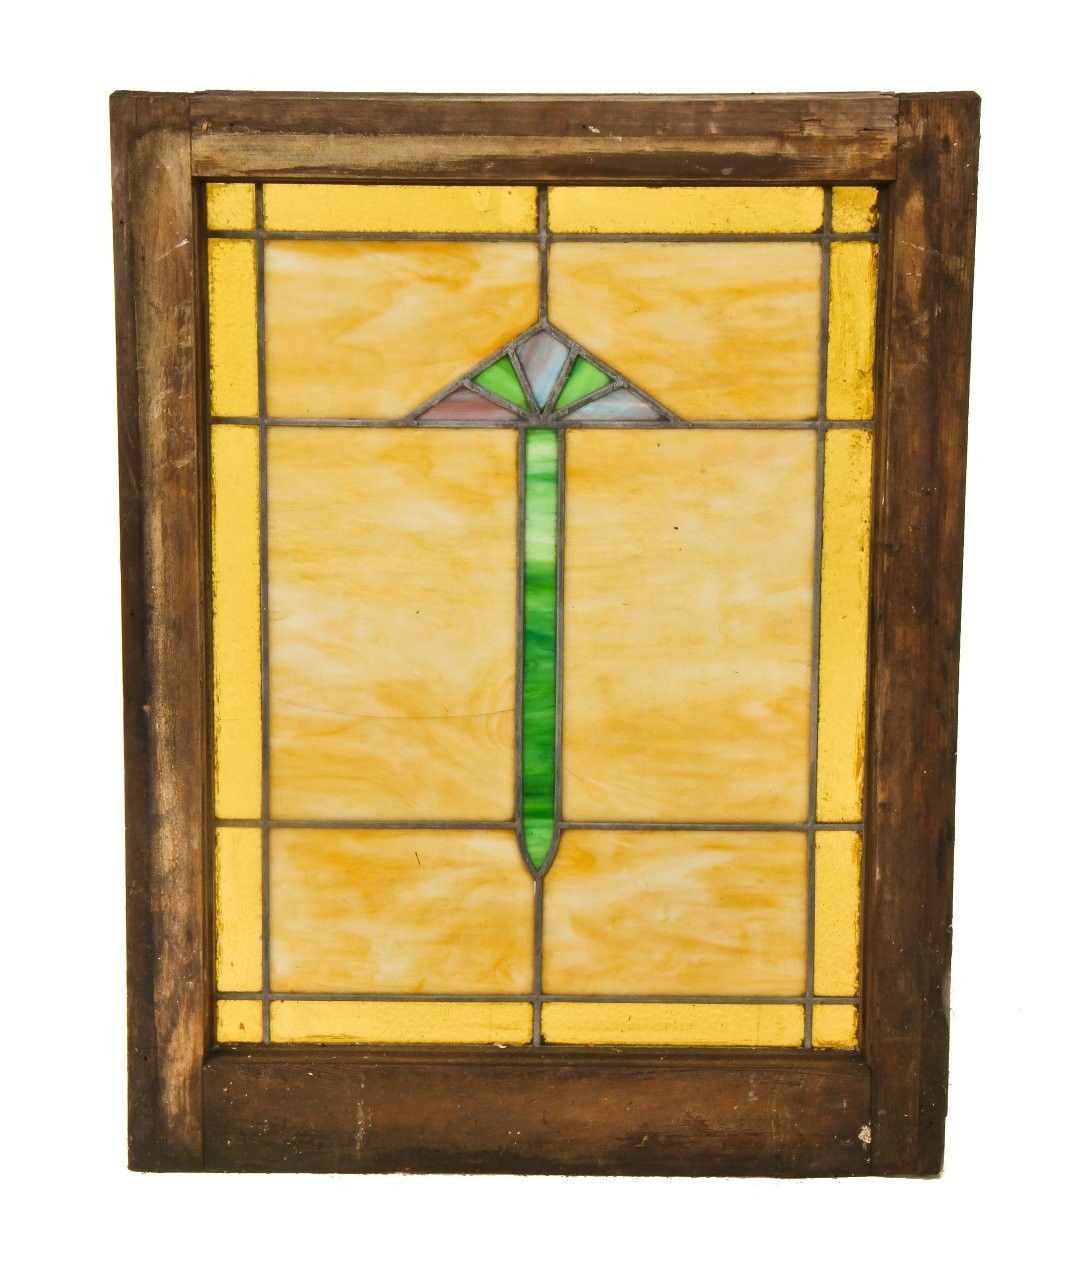 Original Early 1920 S American Craftsman Style Interior Residential Chicago Bungalow Stained Glass Window With Centrally Located Abstract Floral Motif Glass Window Art Art Tiffany Glass Art